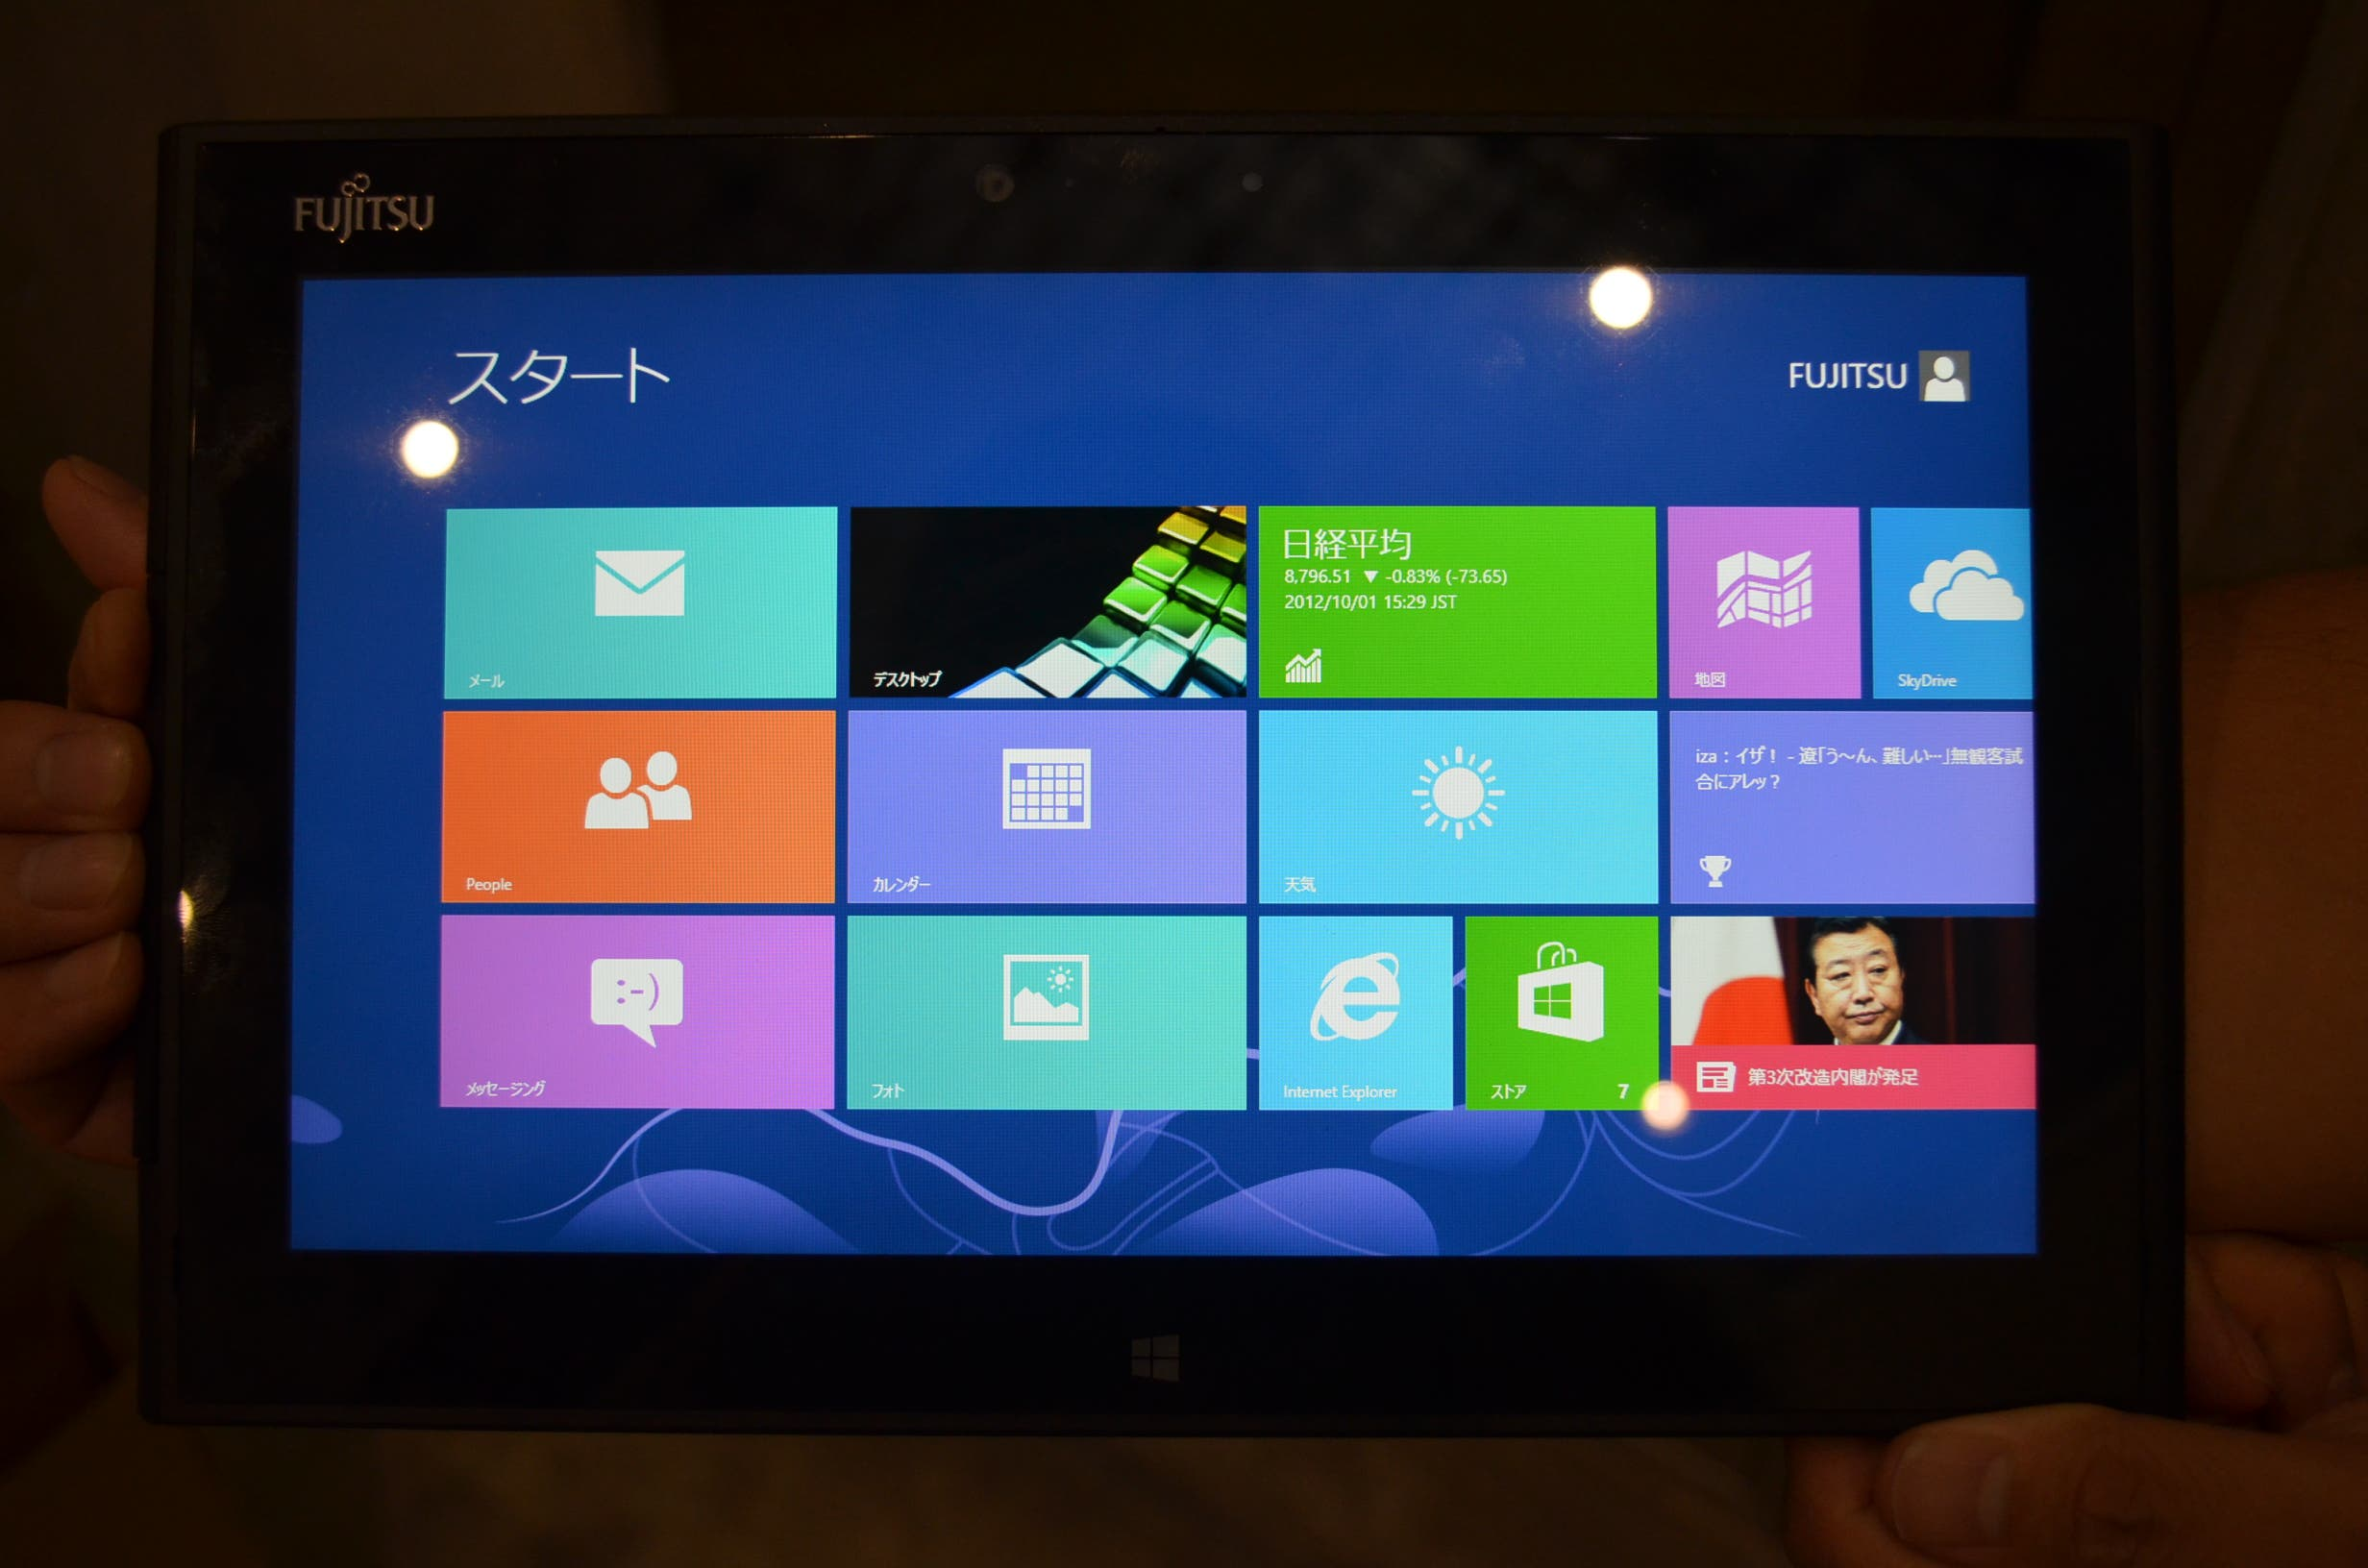 Fujitsu Arrows Tab mit Windows 8 & Atom-CPU im Hands-on auf der CEATEC